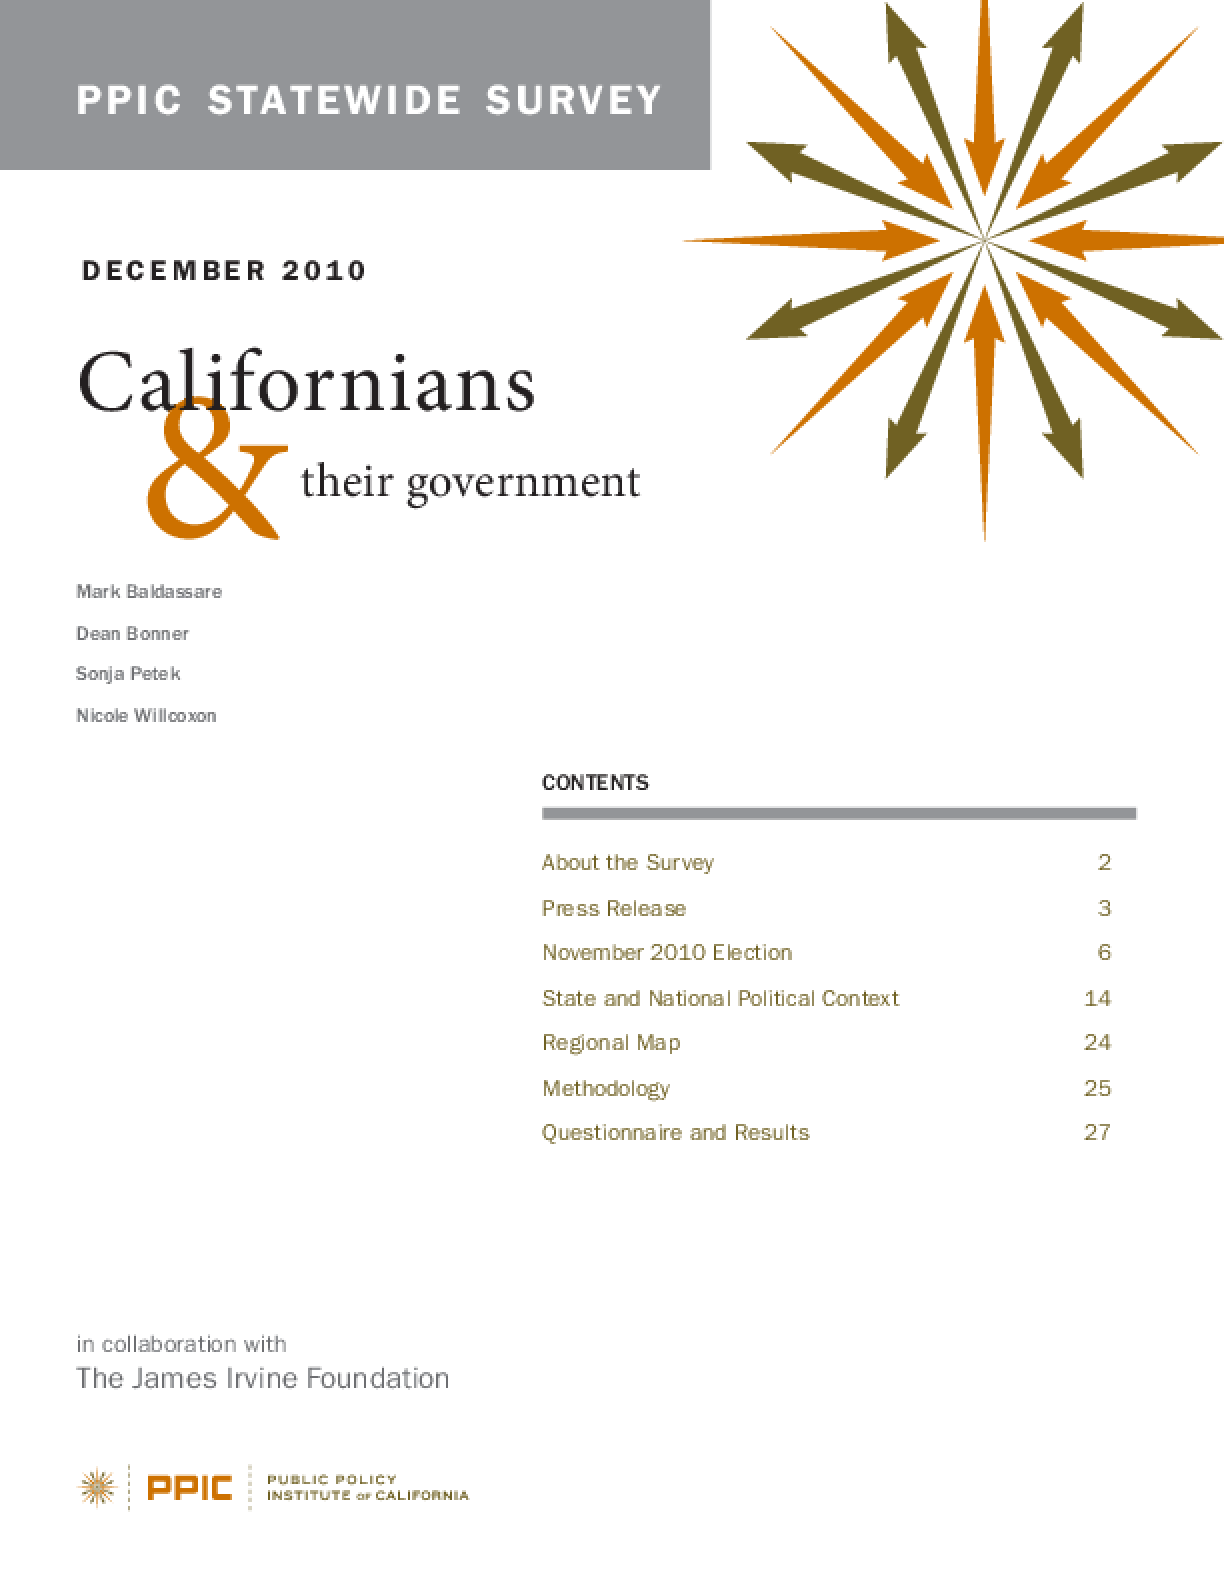 PPIC Statewide Survey: Californians and Their Government 2010